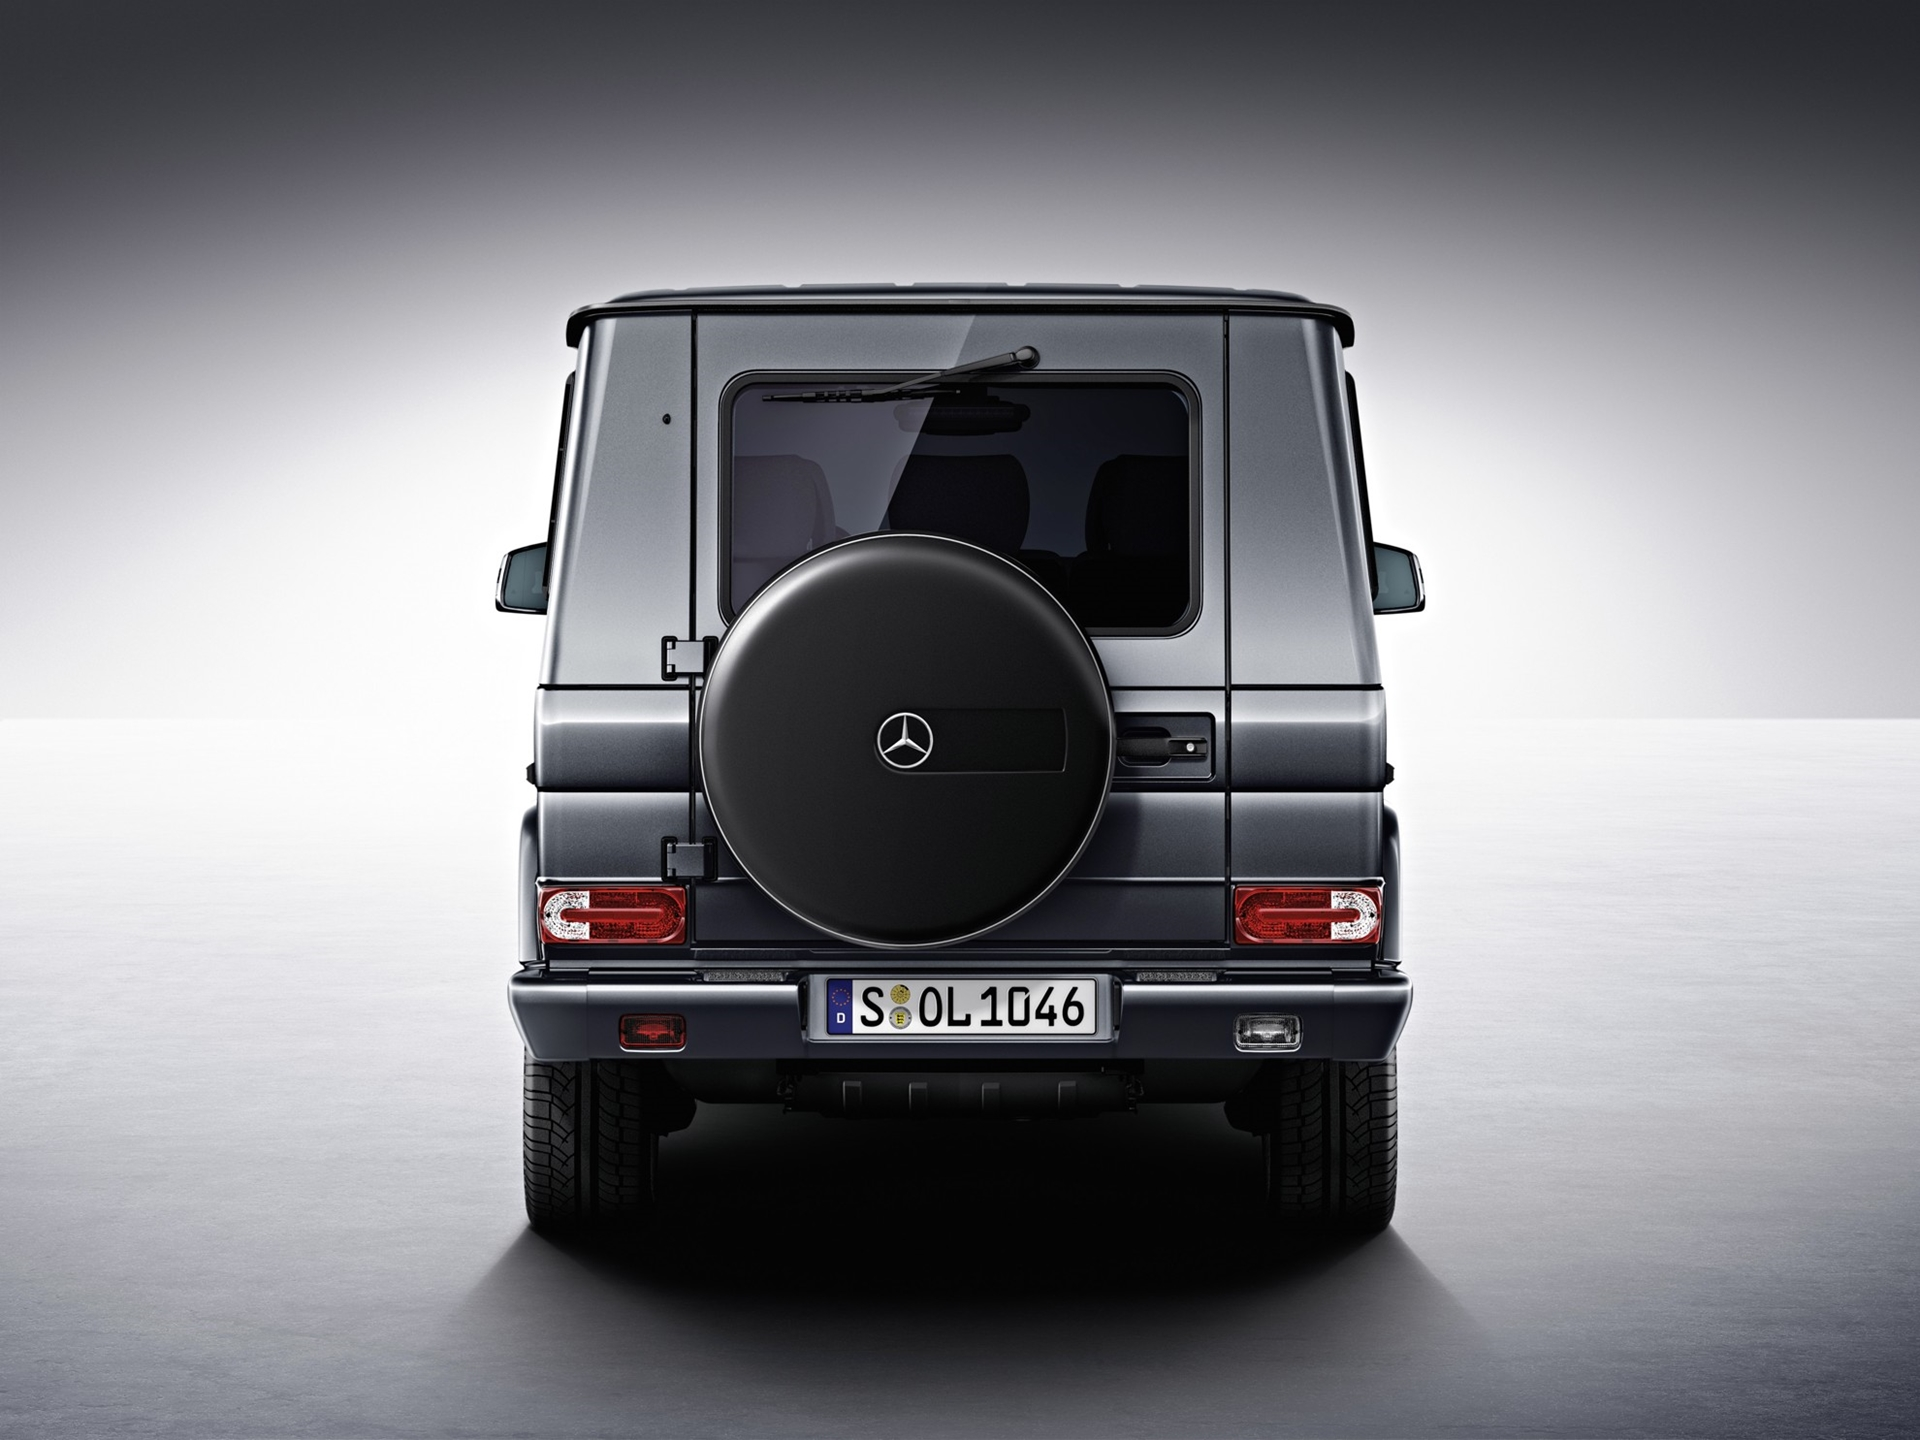 Mercedes-Benz G Class Rear View